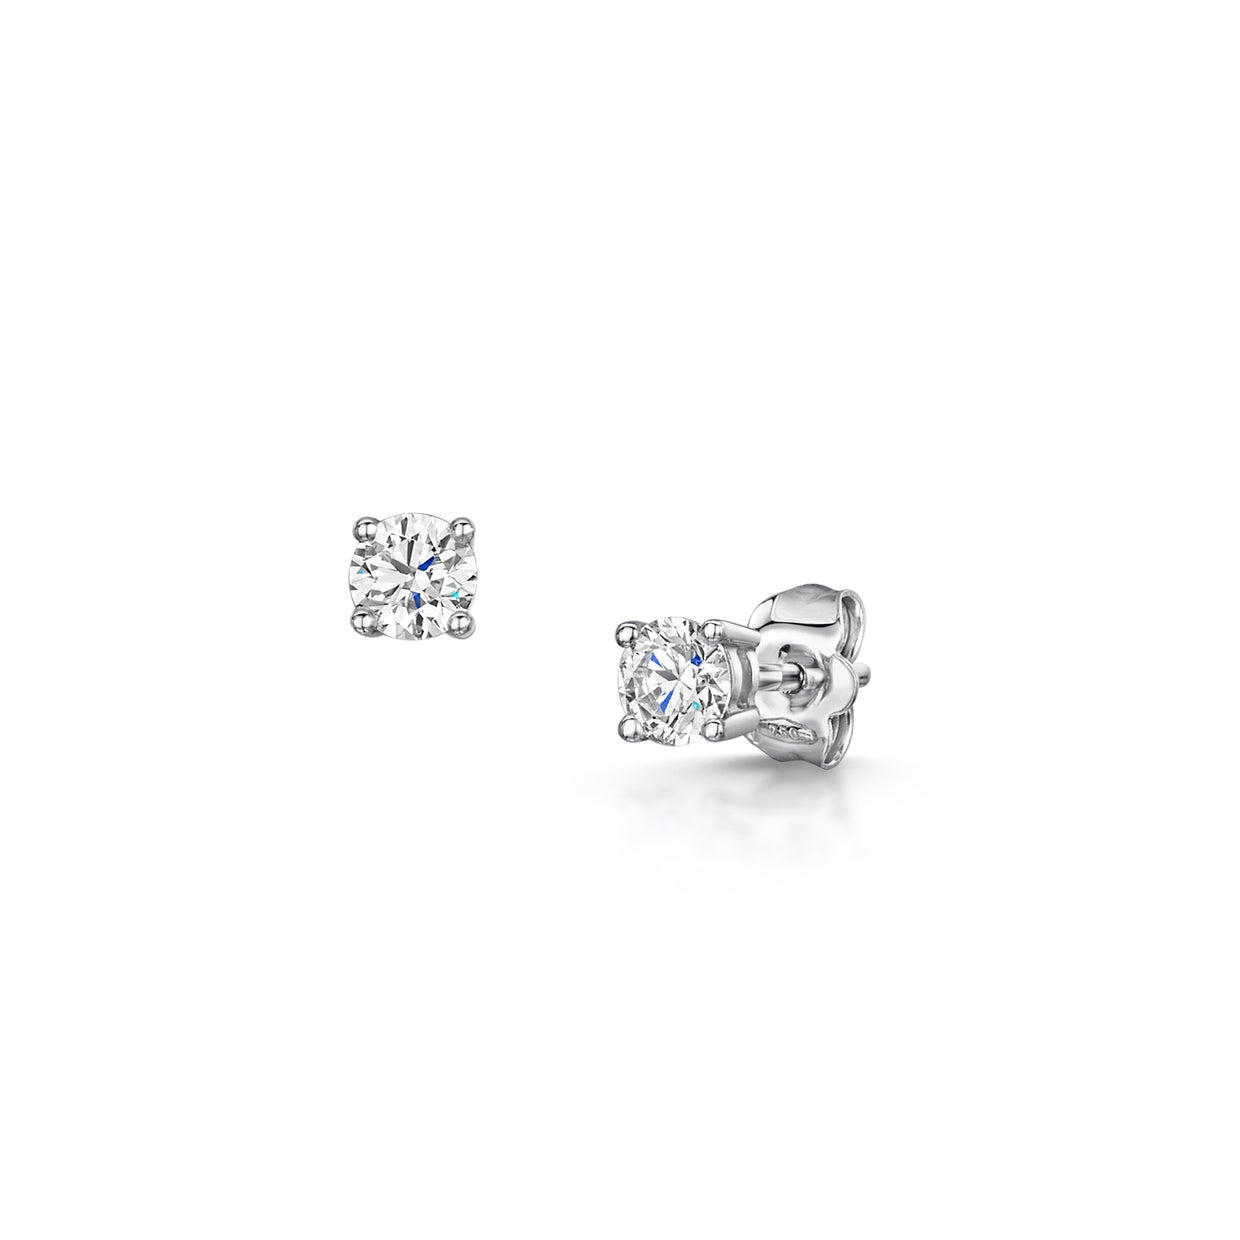 Round Brilliant Cut 0.70ct Diamond Stud Earrings in White Gold-Hamilton & Inches